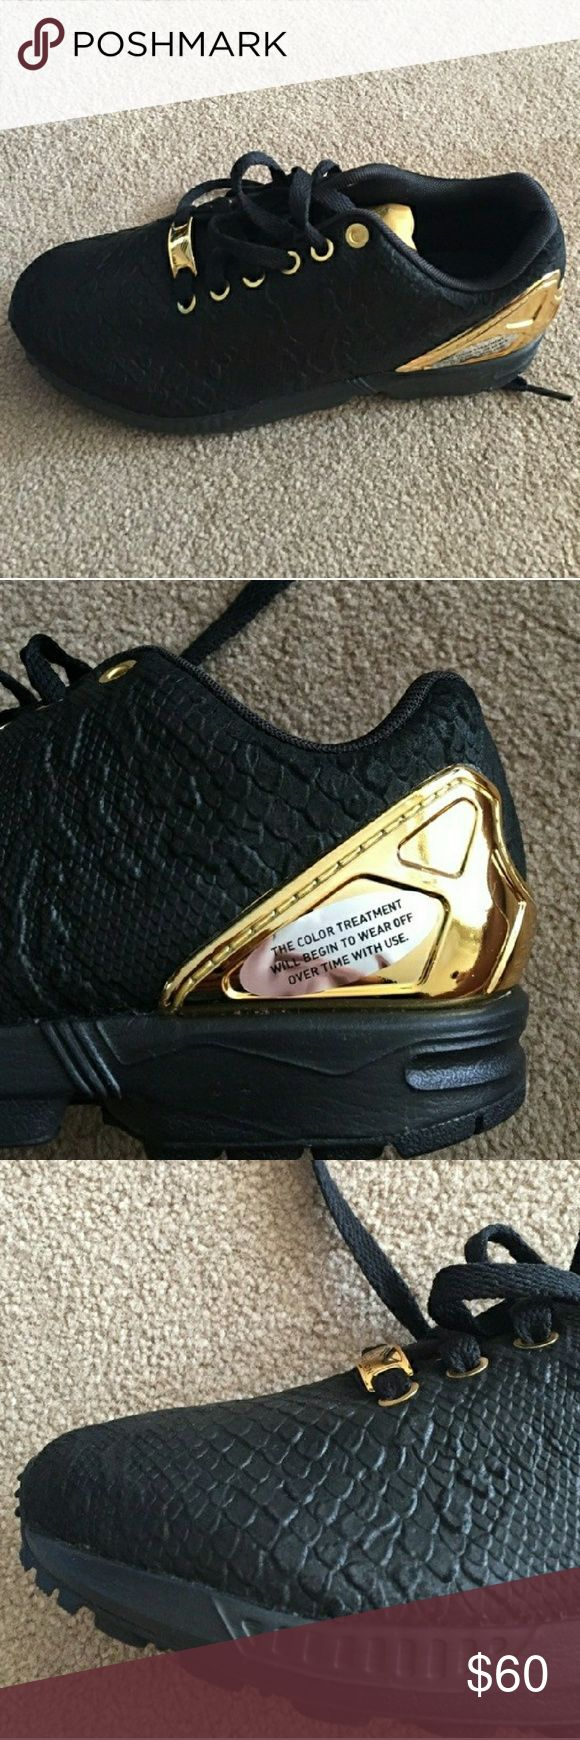 ADIDAS ZX FLUX Black and gold snakeskin print shoes Excellent condition  Only worn a few times  Youth size 5, but Adidas runs bigger, so fits more like a women's size 7.5  I think Nice looking shoe, just too big for me Adidas Shoes Athletic Shoes